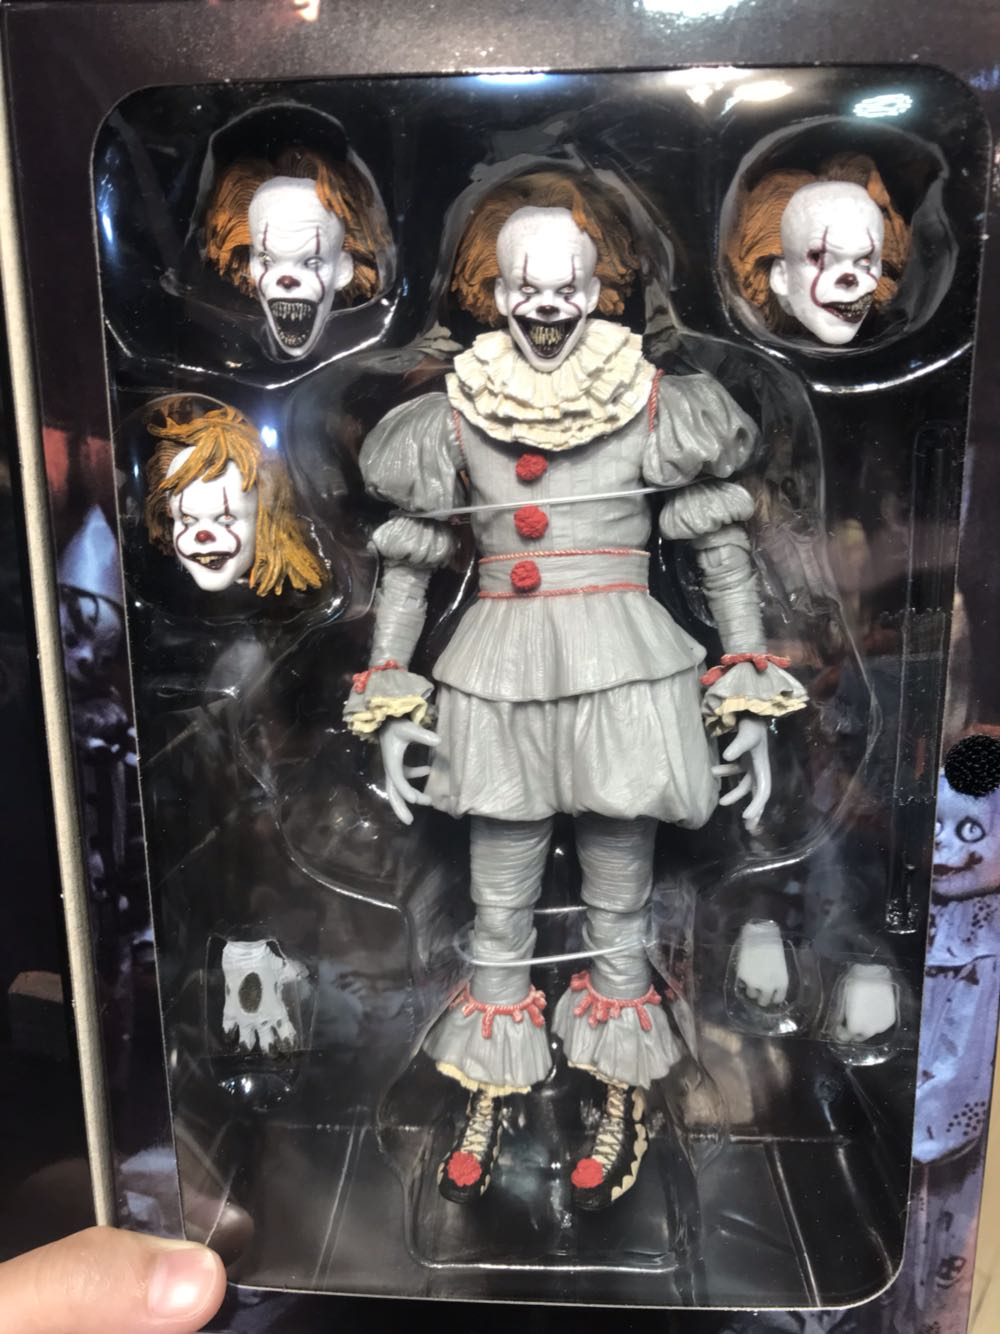 Children cartoon toys clown 2017 Stephen Kings It Ultimate Evil version 7 inch movable doll action figure NECAChildren cartoon toys clown 2017 Stephen Kings It Ultimate Evil version 7 inch movable doll action figure NECA